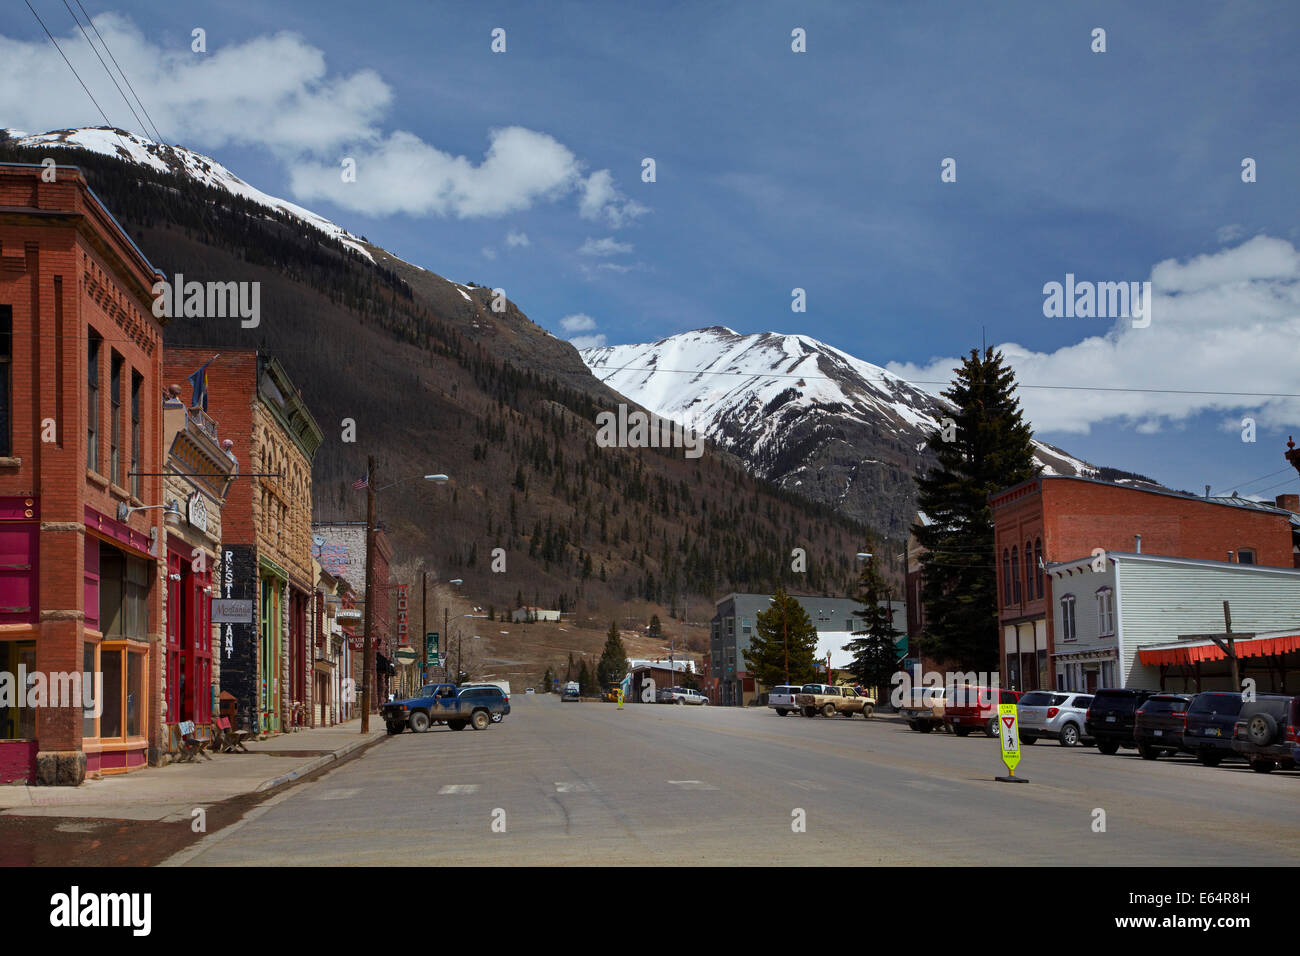 Main street of the historic mining town of Silverton, at an altitude of 9,305 ft / 2,836 m, in the San Juan Mountains, - Stock Image